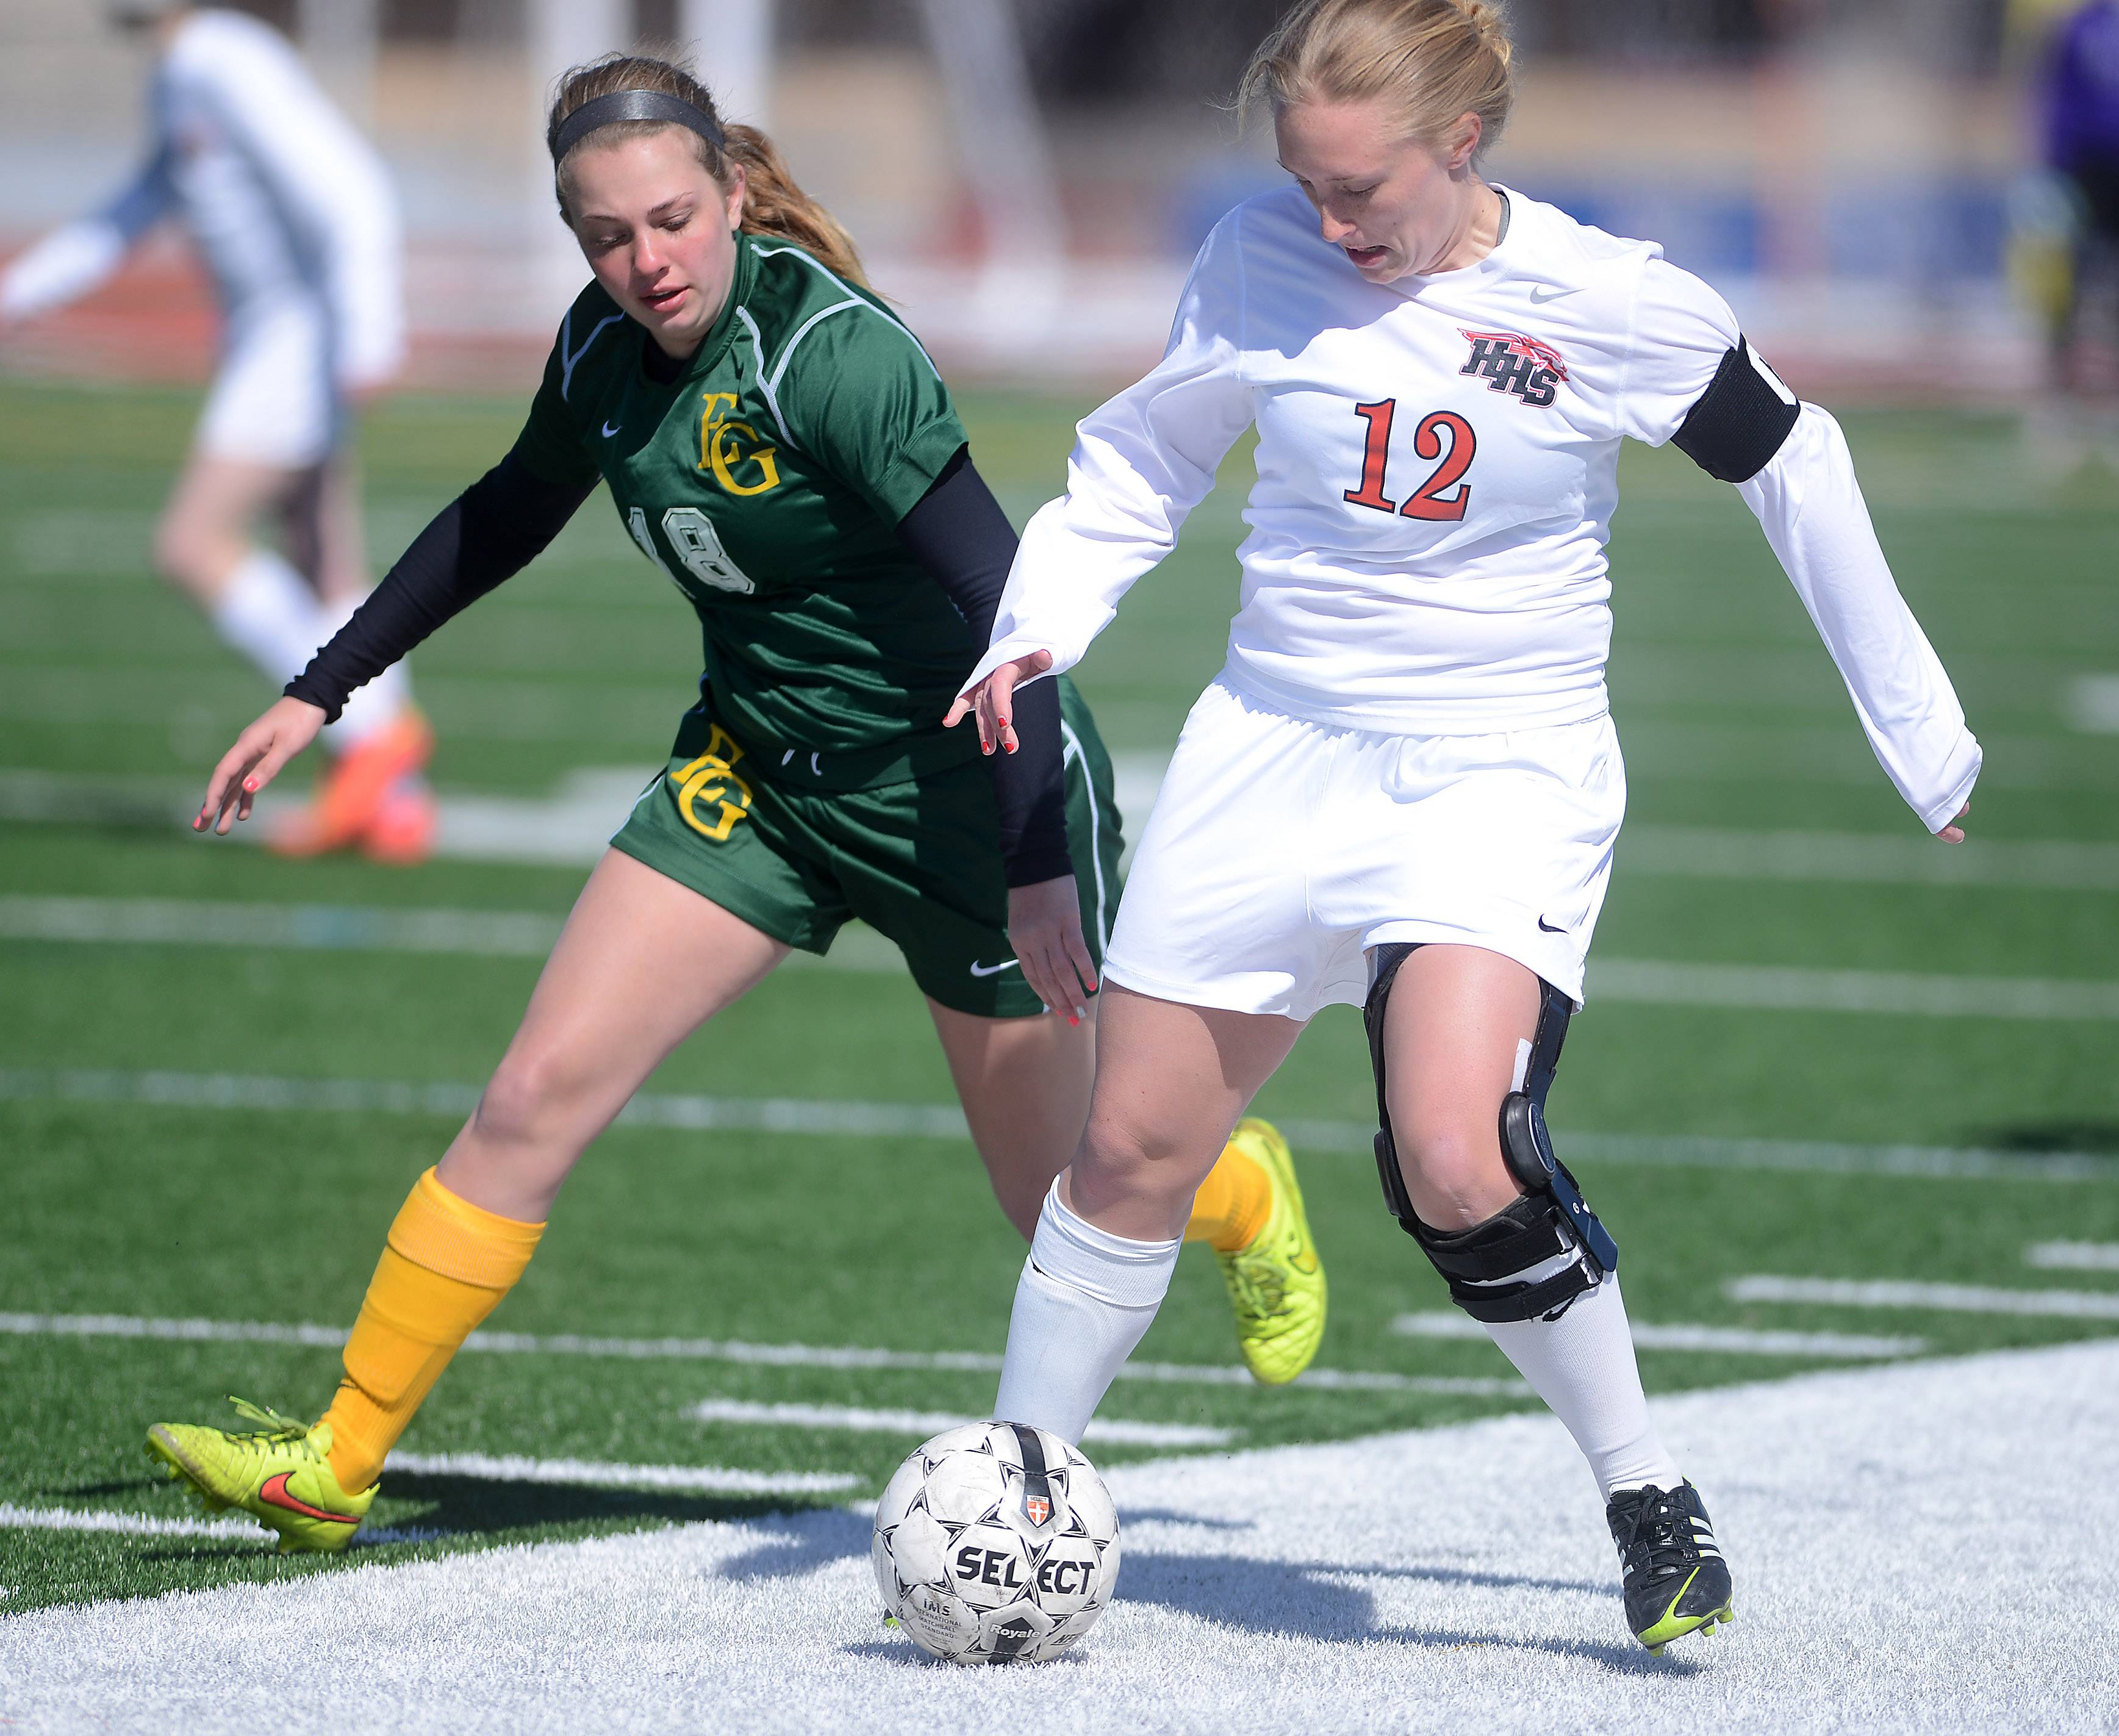 Huntley's Deanna Hecht brings the ball up the sideline as Elk Grove's Ally Czyzewski defends during Saturday's game in Huntley.